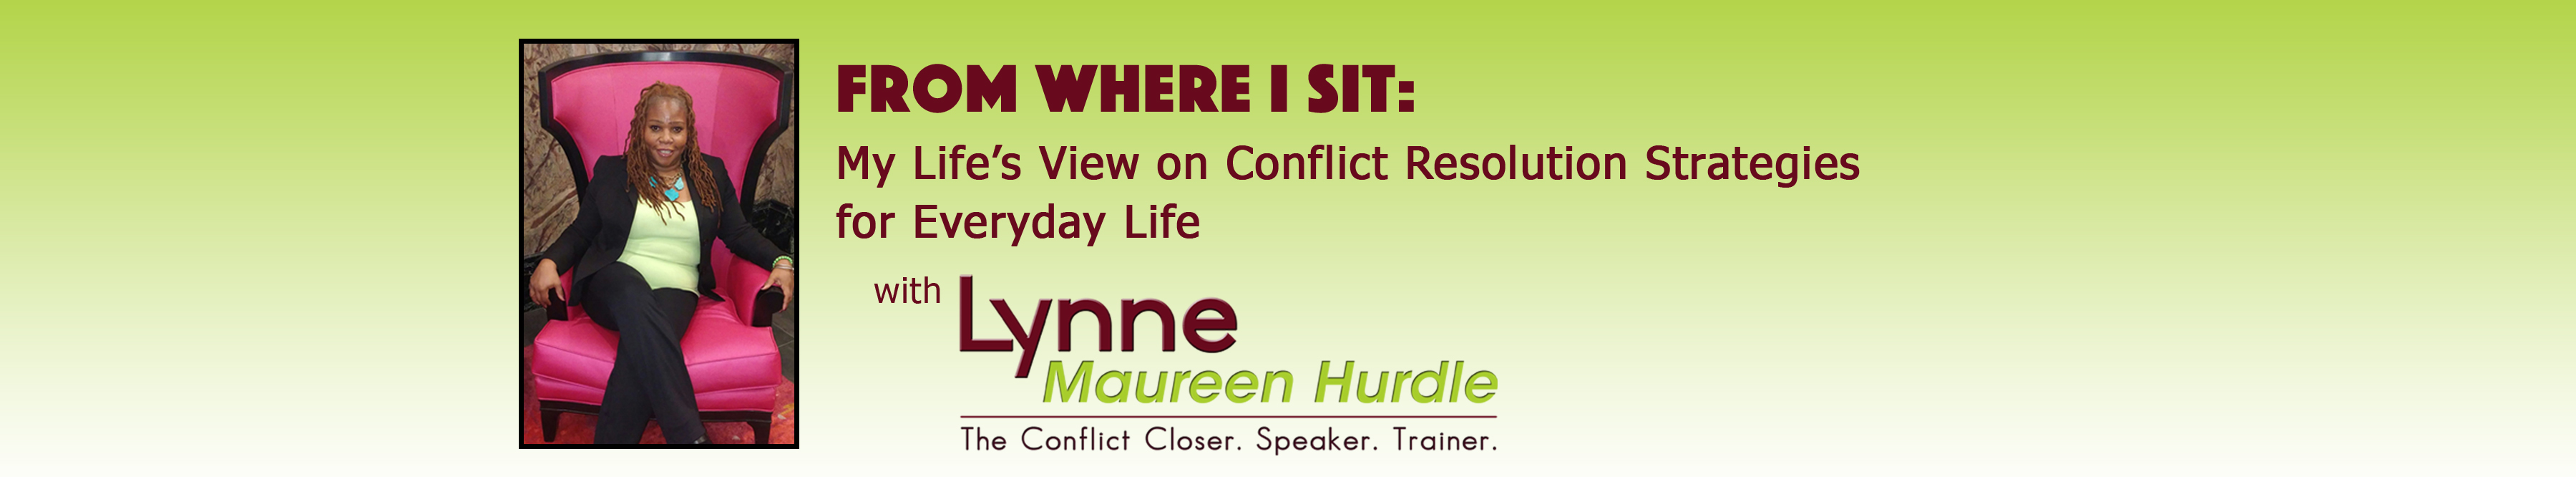 Conflict Resolution Tips and Blog